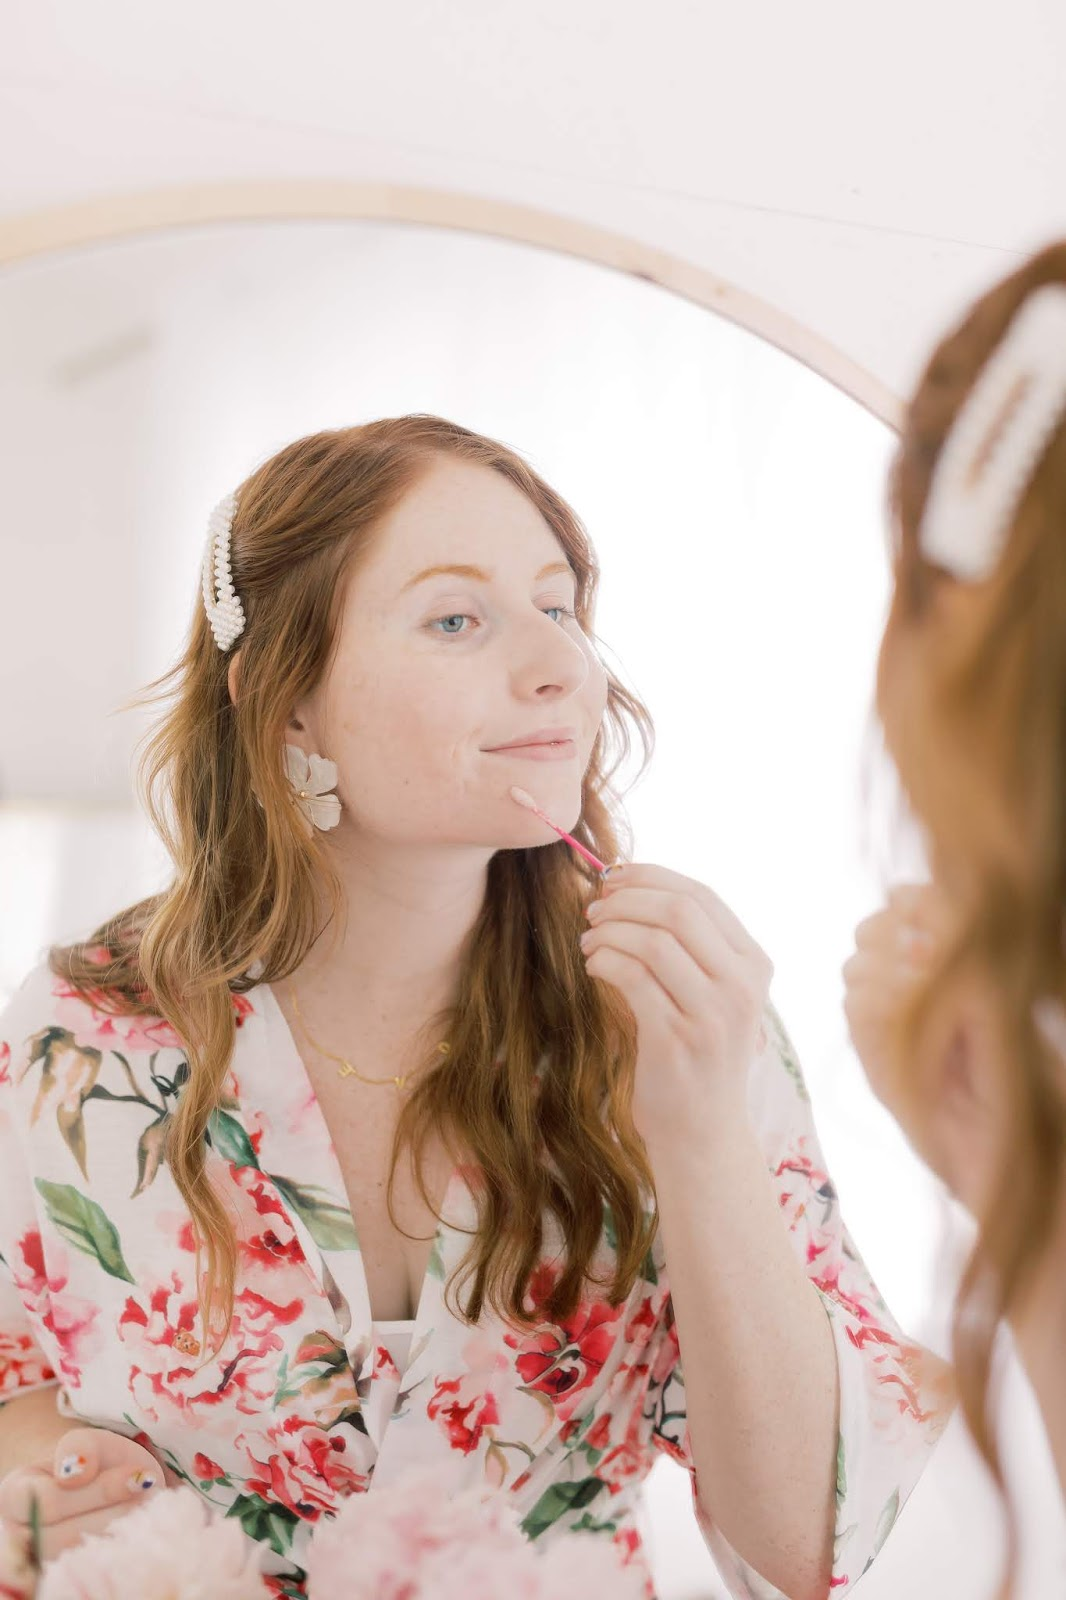 Fight Acne in Your 20s With These 3 Products. Affordable by Amanda, Tampa Beauty Blogger. Mario Badescu Drying Lotion for Acne.